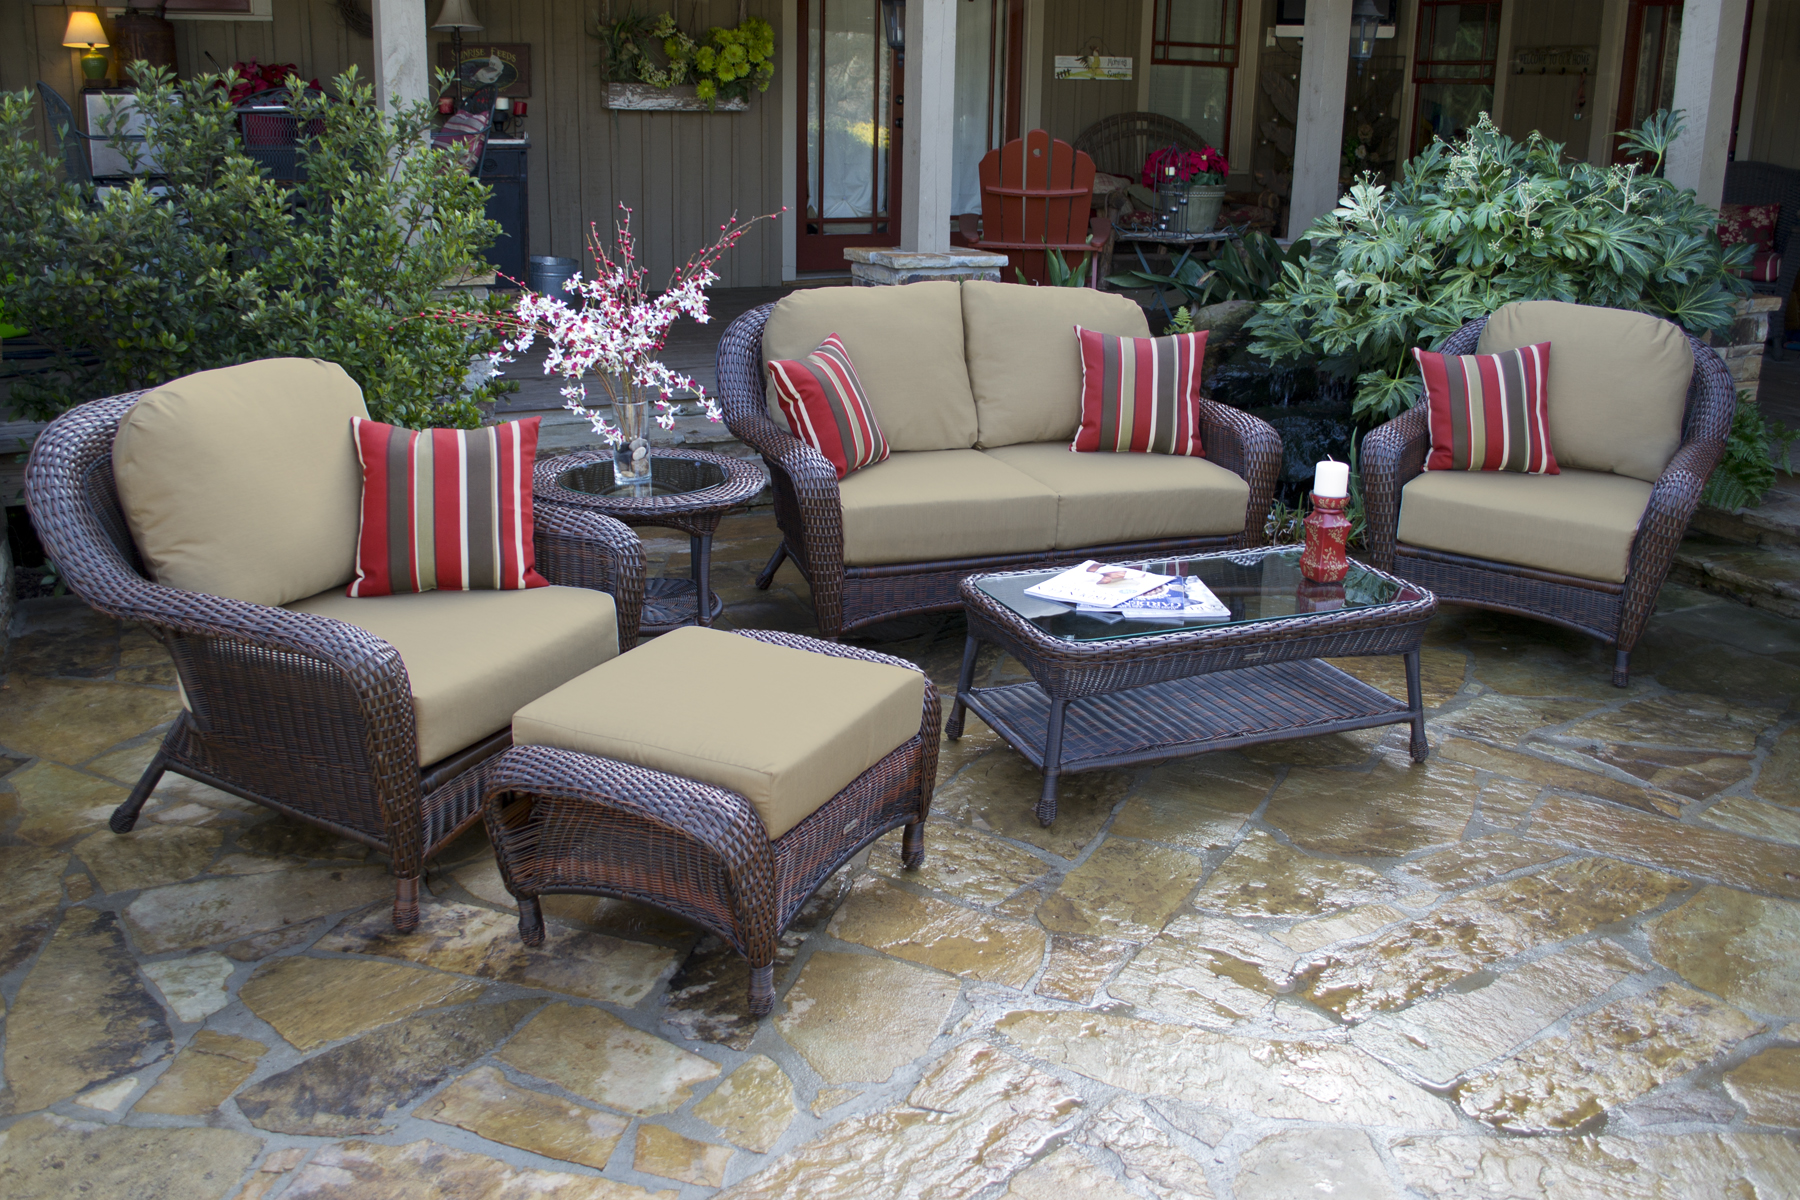 Using Outdoor Furniture Indoors Blog Wicker Home And Patio Furniture Ideas To Create The